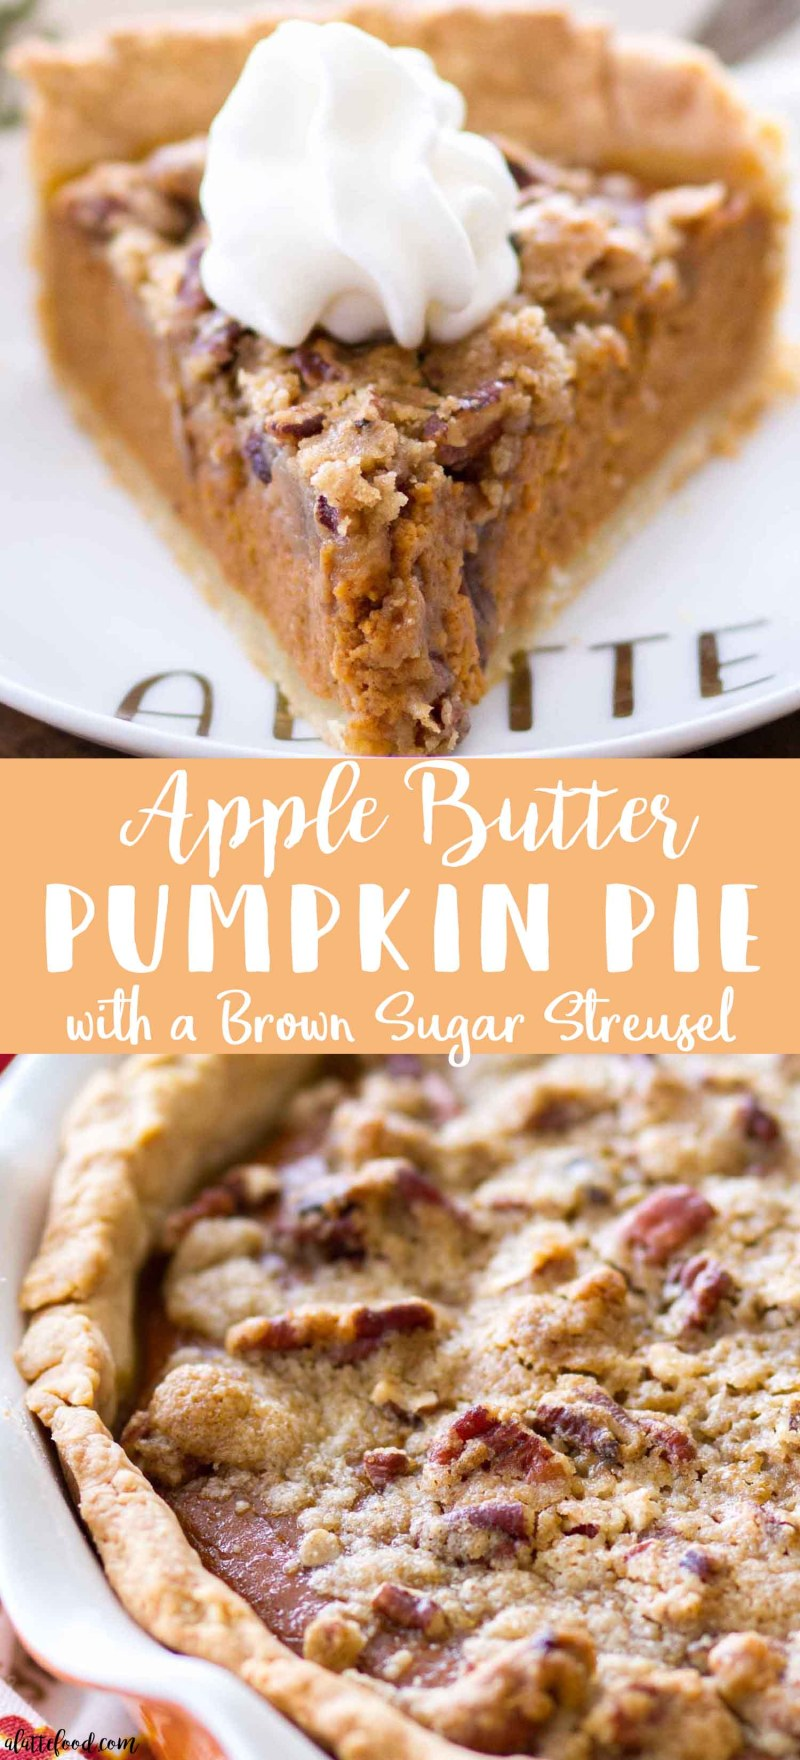 Homemade Apple Butter Pumpkin Pie with a Brown Sugar Streusel Topping (how to make pumpkin pie with a streusel topping)